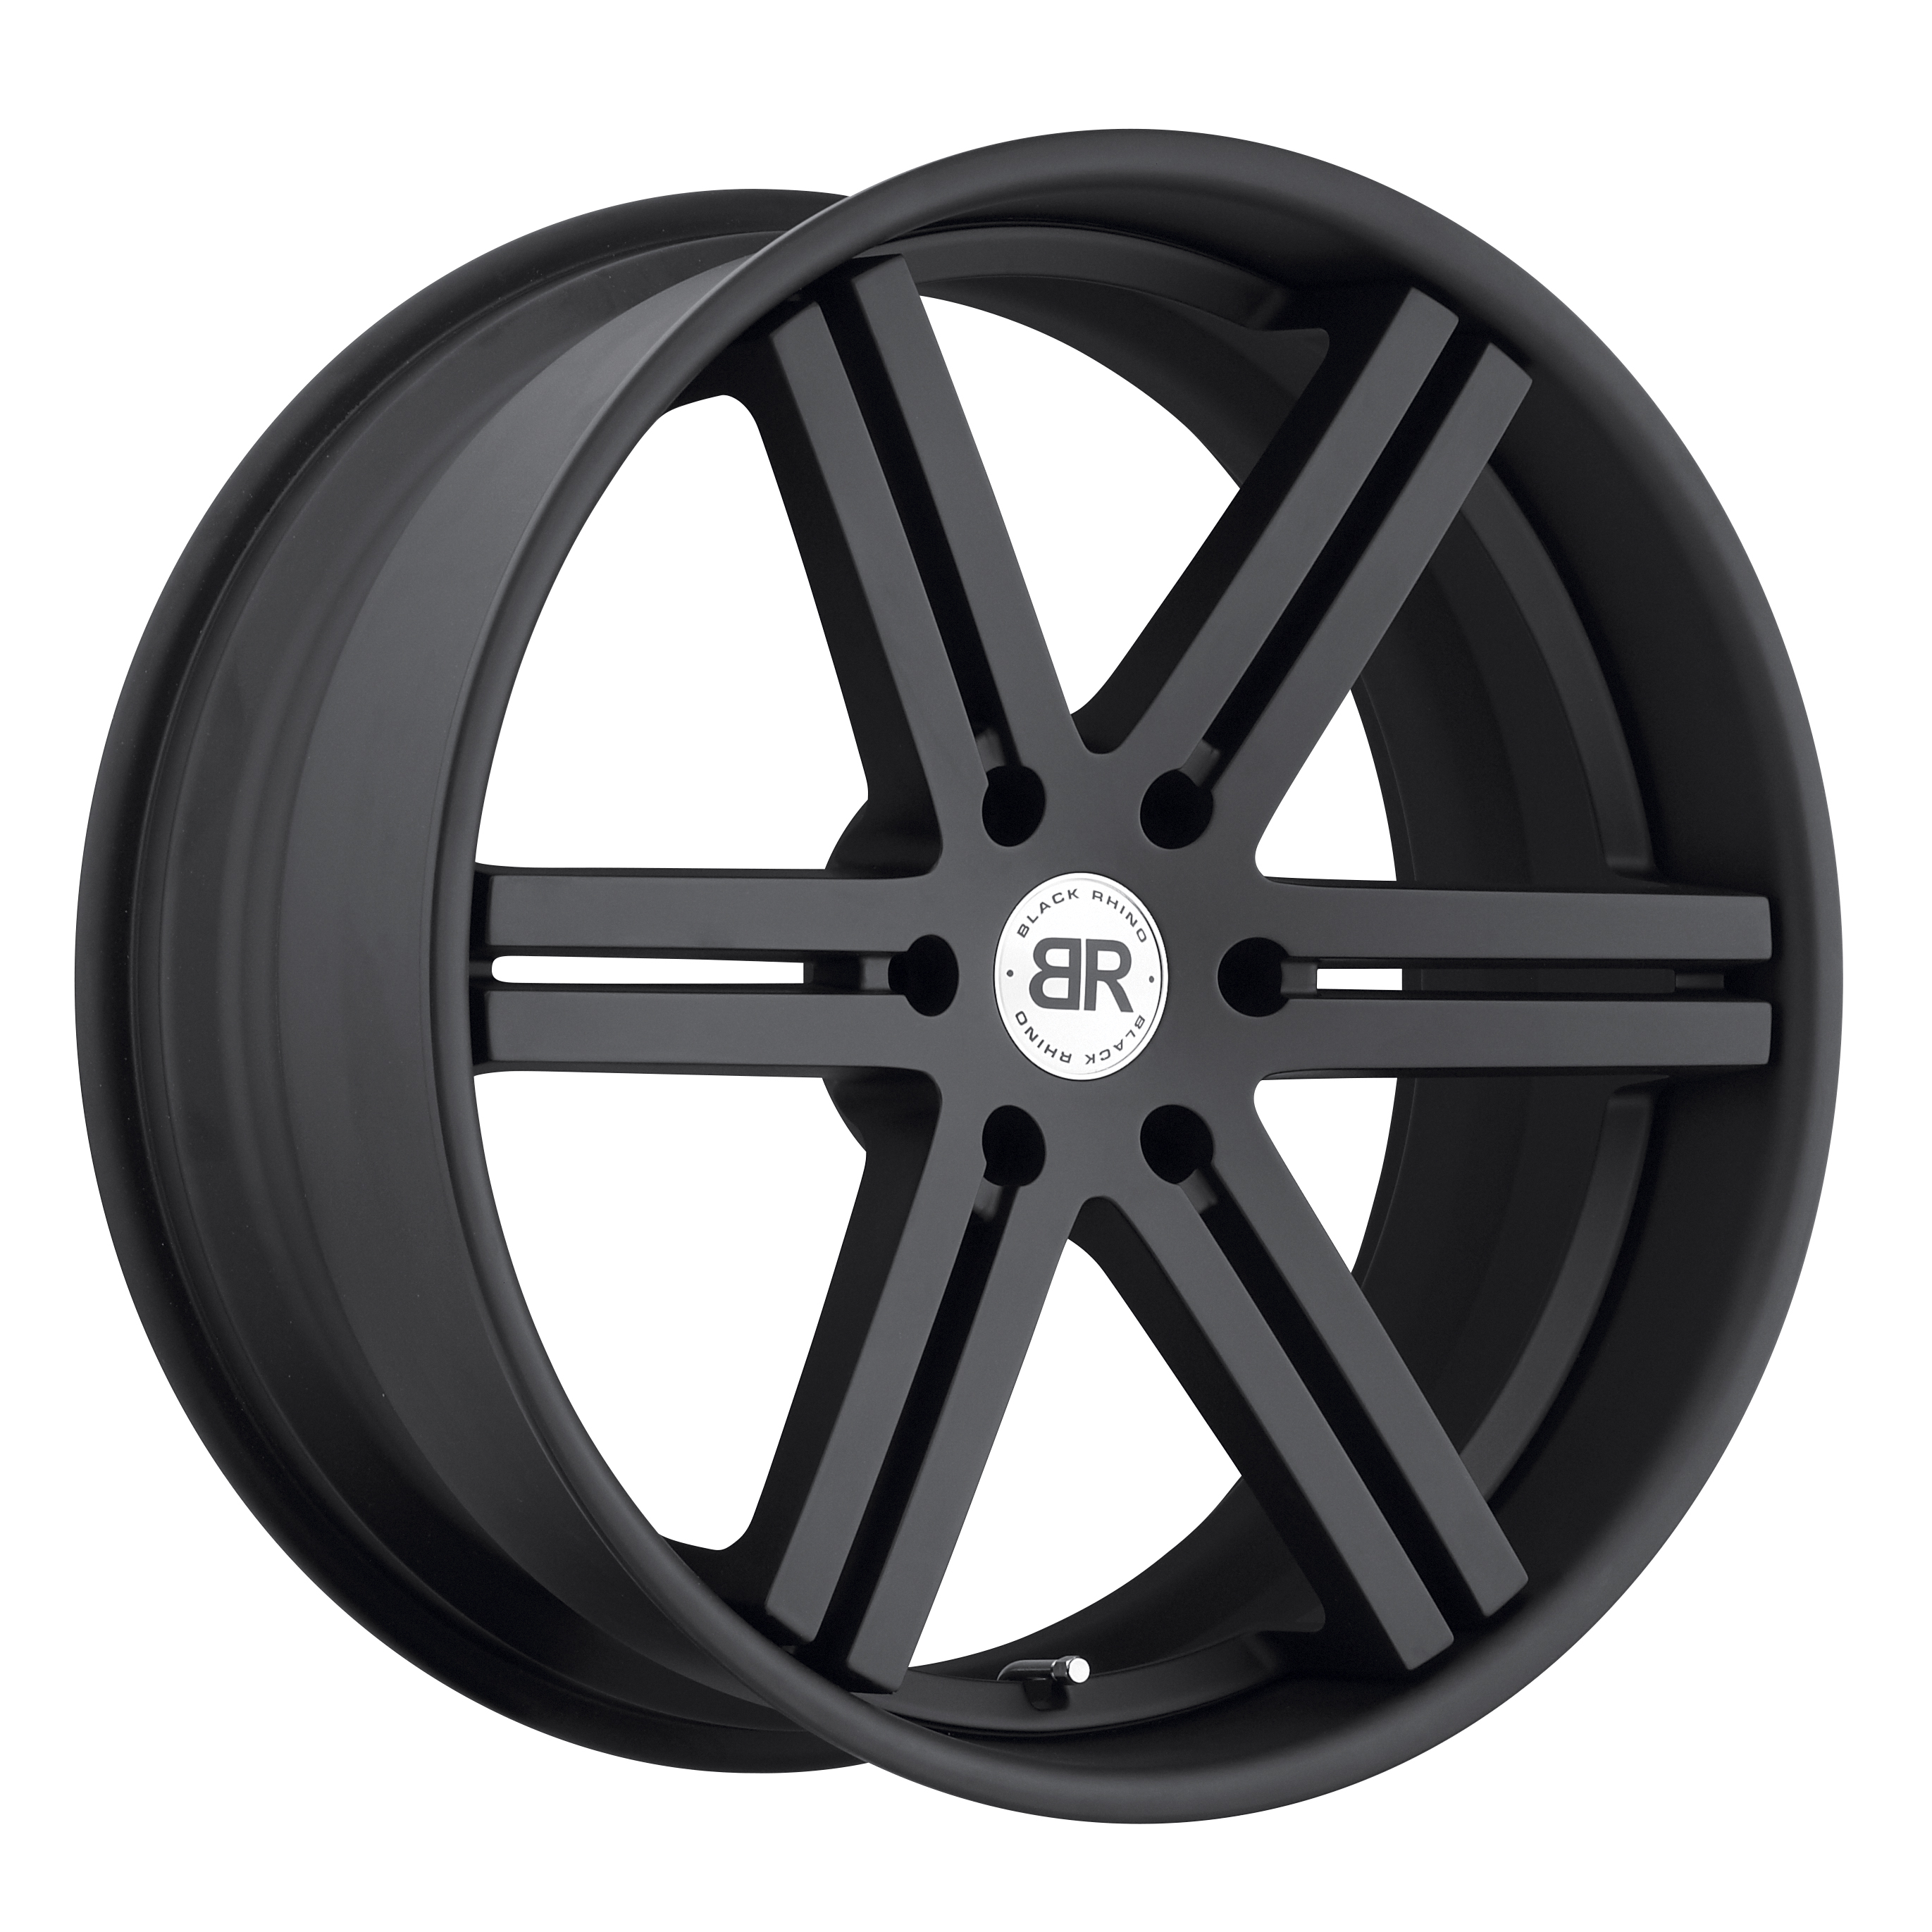 letaba truck wheels in 20 inch 22 inch and 24 inch diameters